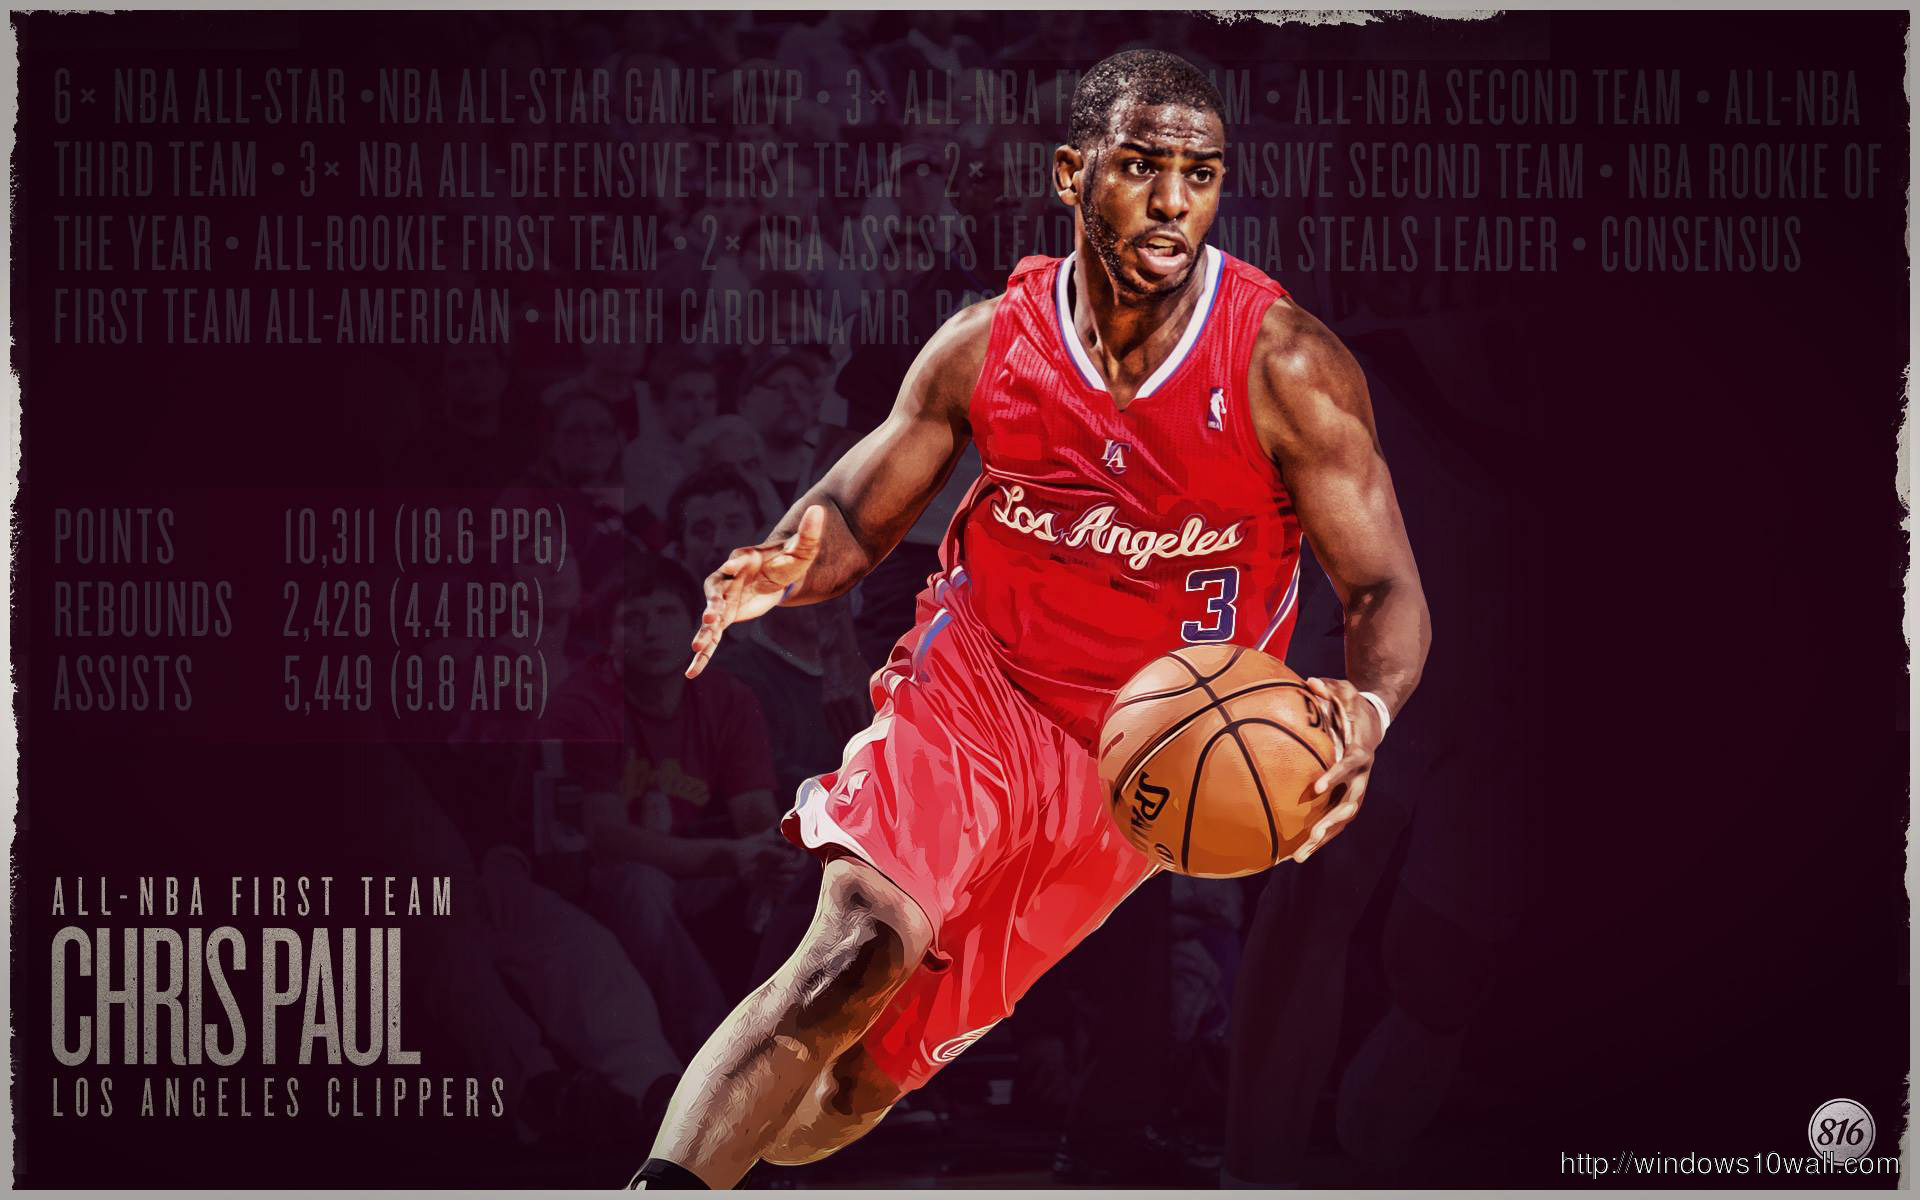 Nba basketball wallpaper 2013